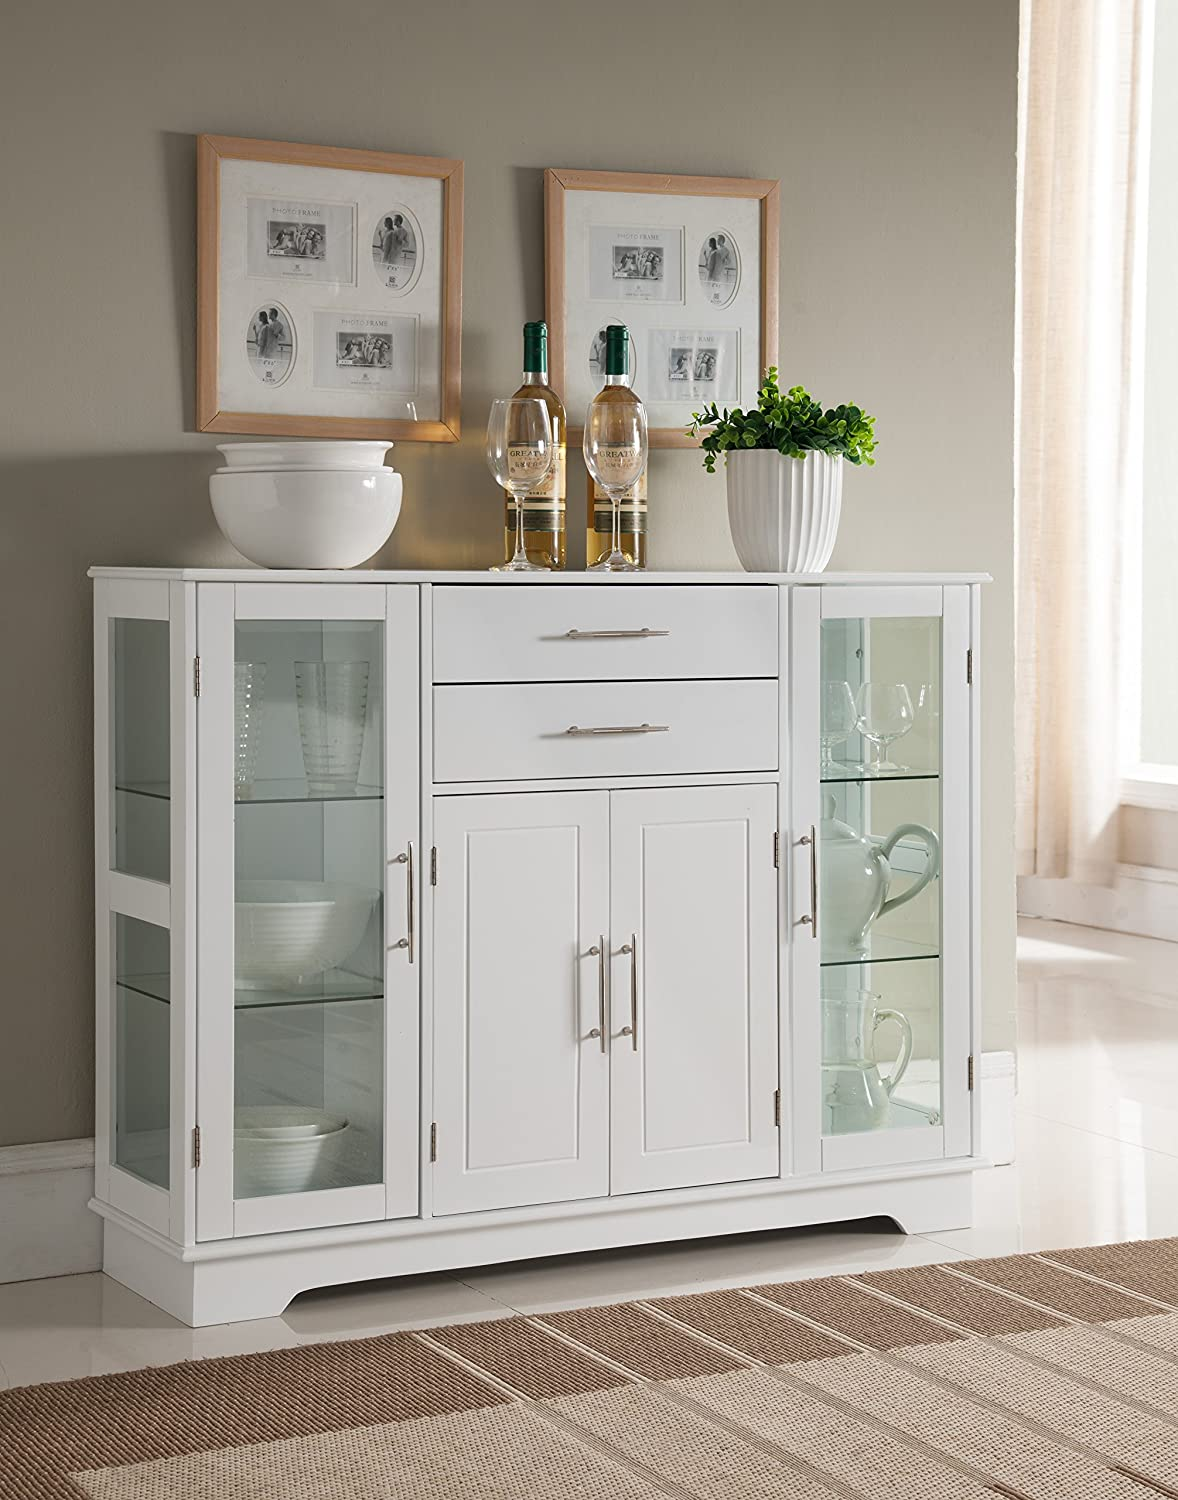 Amazon.com - Kings Brand Kitchen Storage Cabinet Buffet With Glass ...